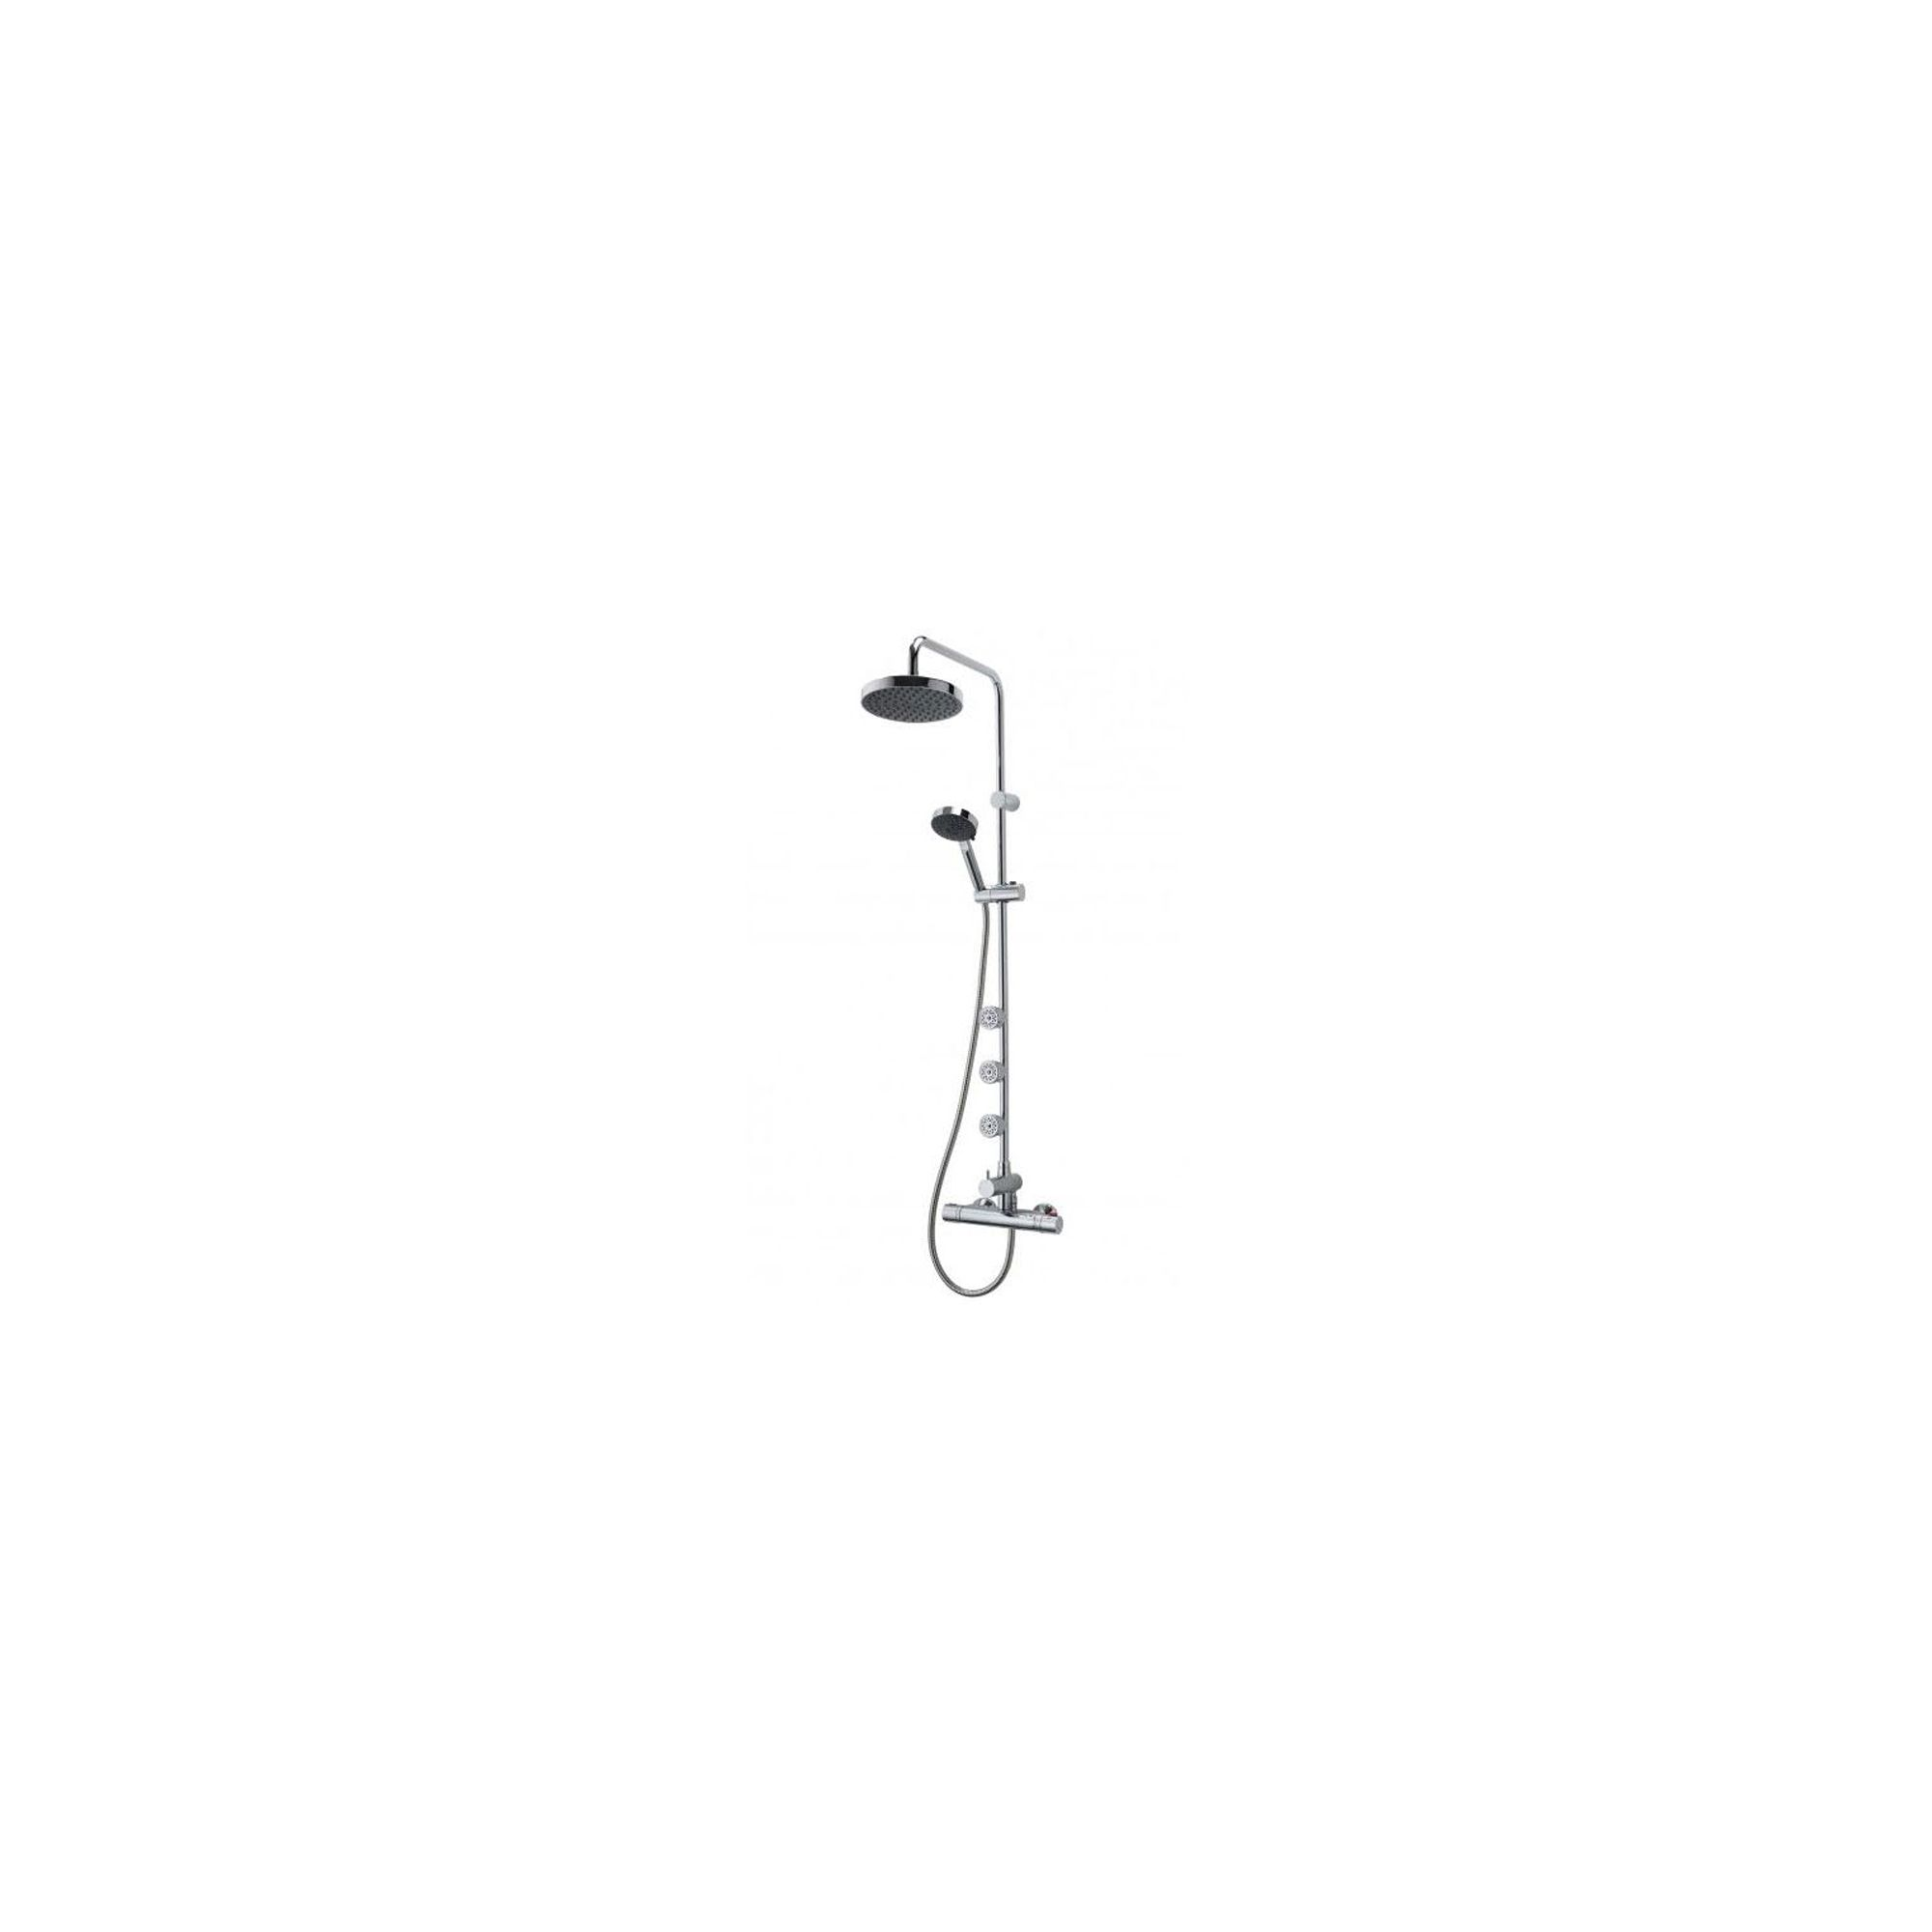 Triton Nene Thermostatic Bar Mixer with Diverter Chrome at Tesco Direct